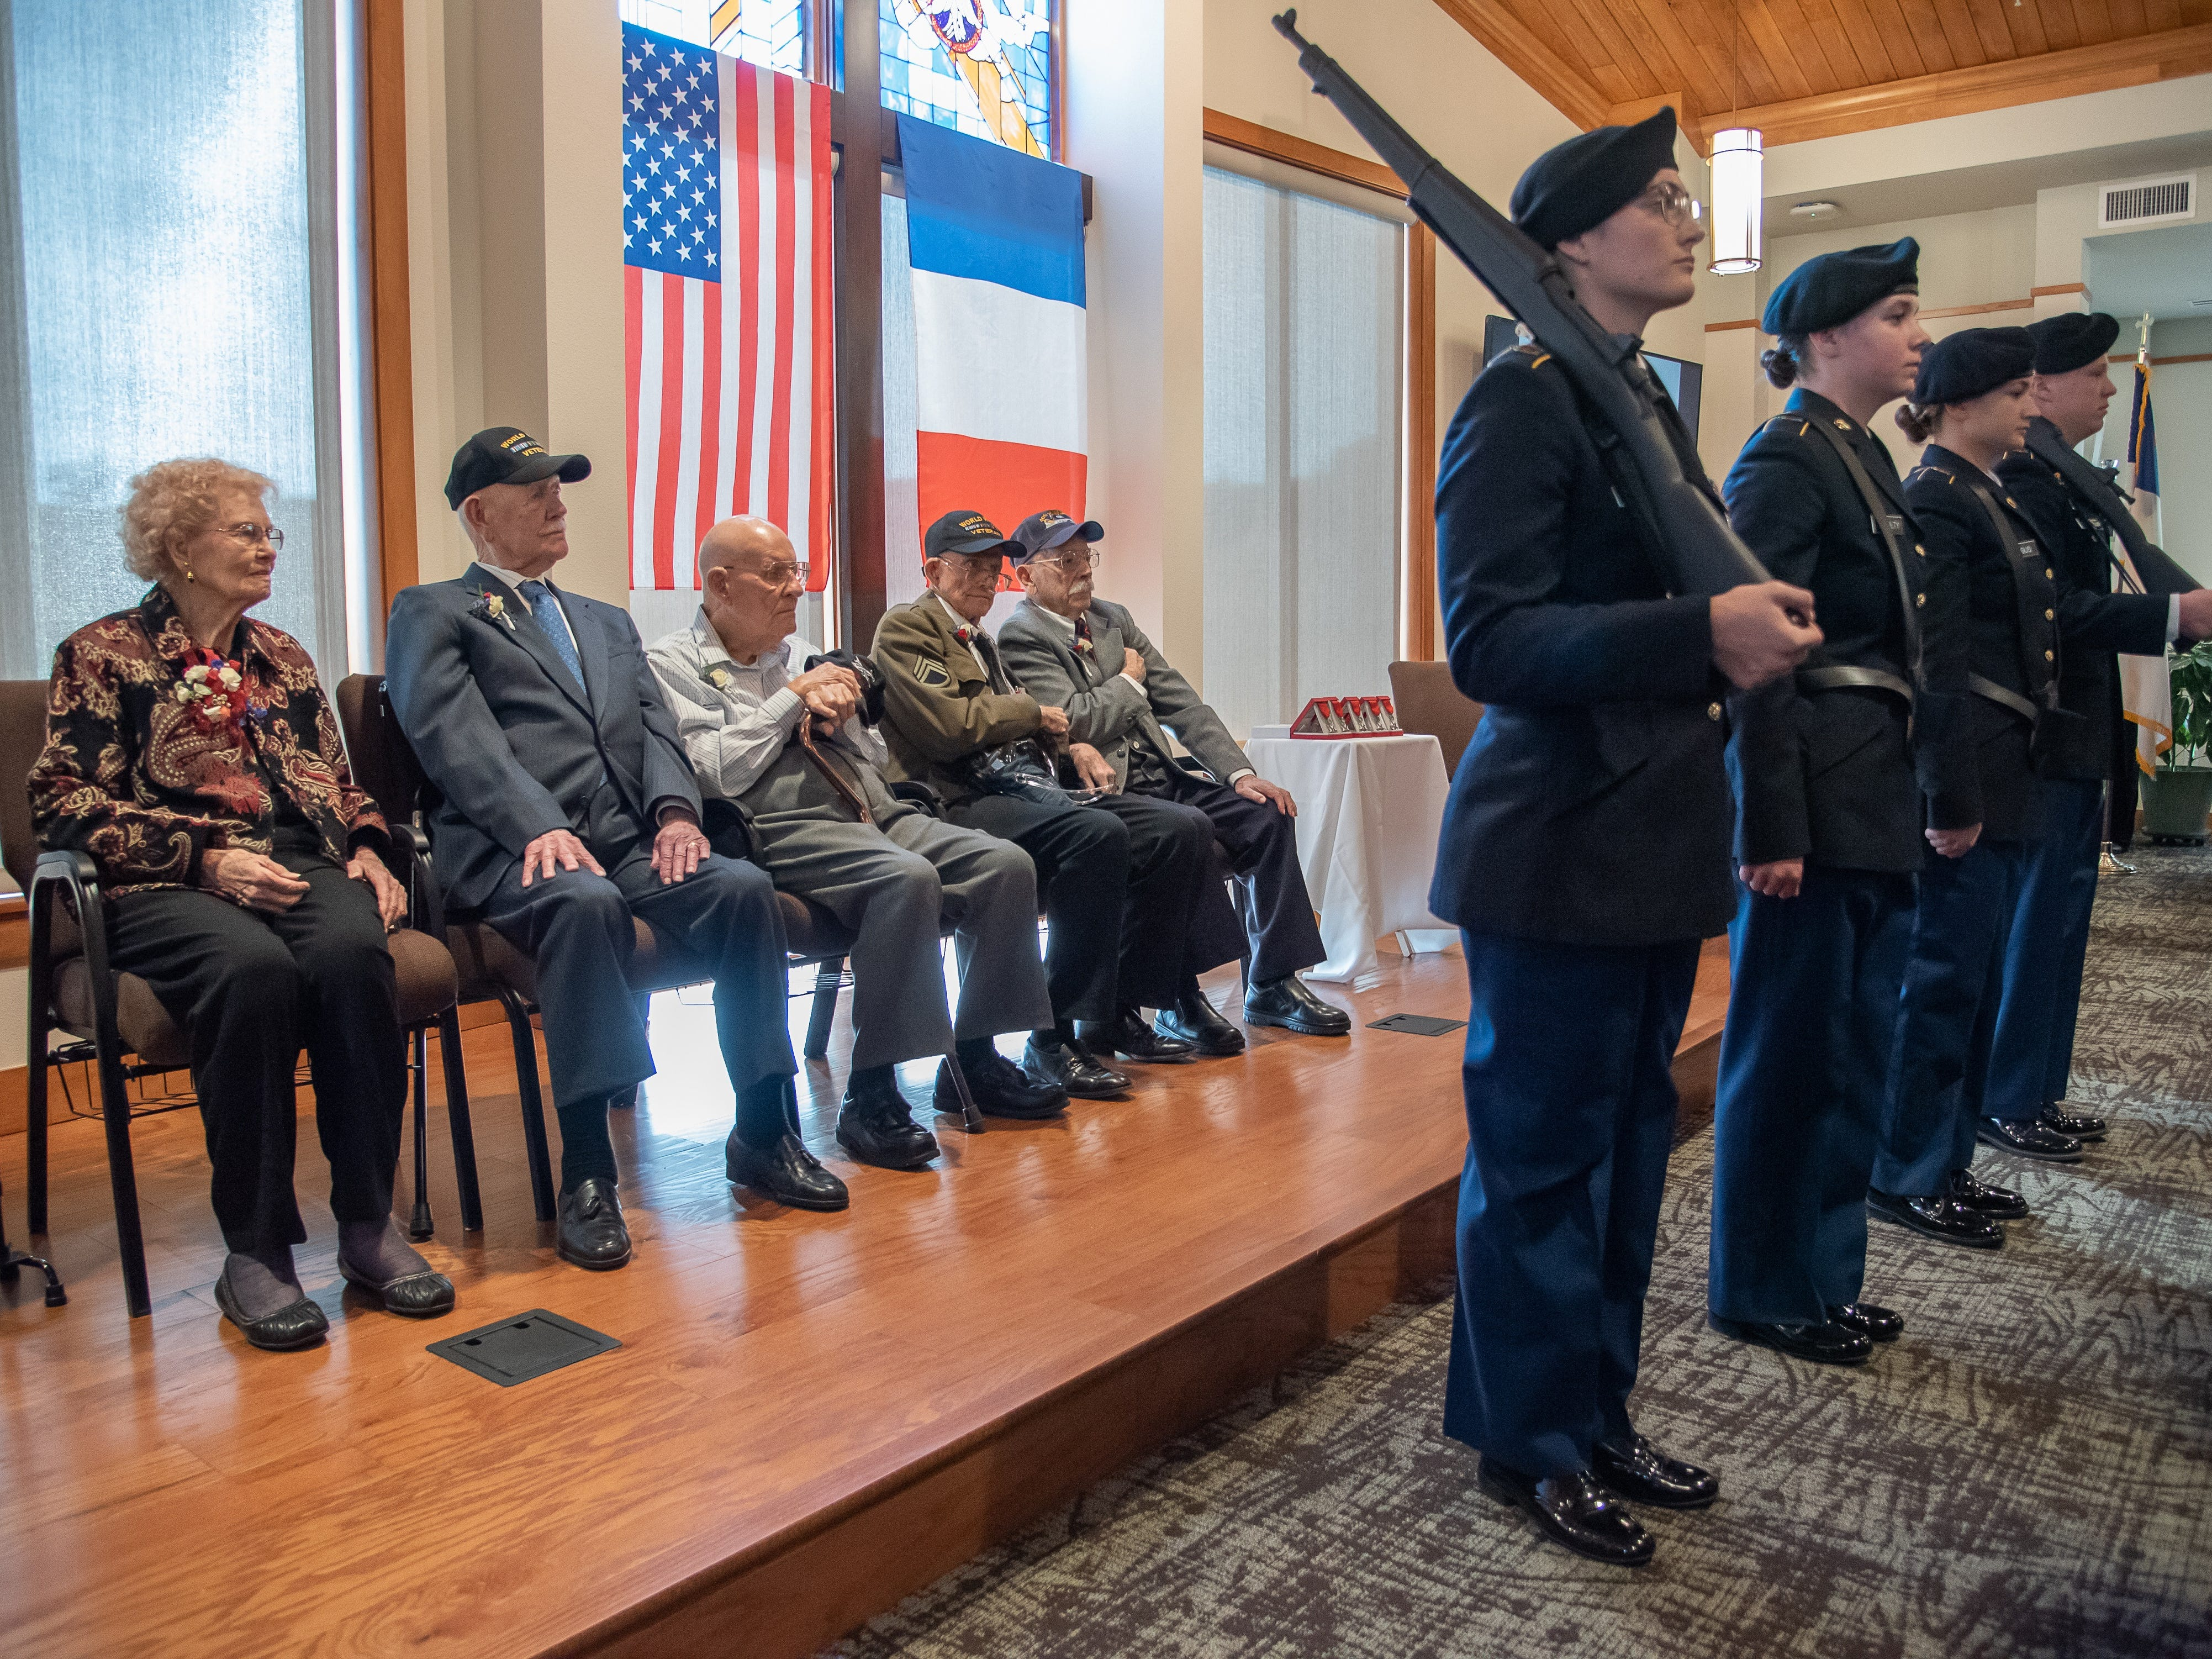 Local World War II veterans line the stage at the beginning of a French Legion of Honor Ceremony at the Good Samaritan Water Valley Resort in Windsor on Monday, February 4, 2019.